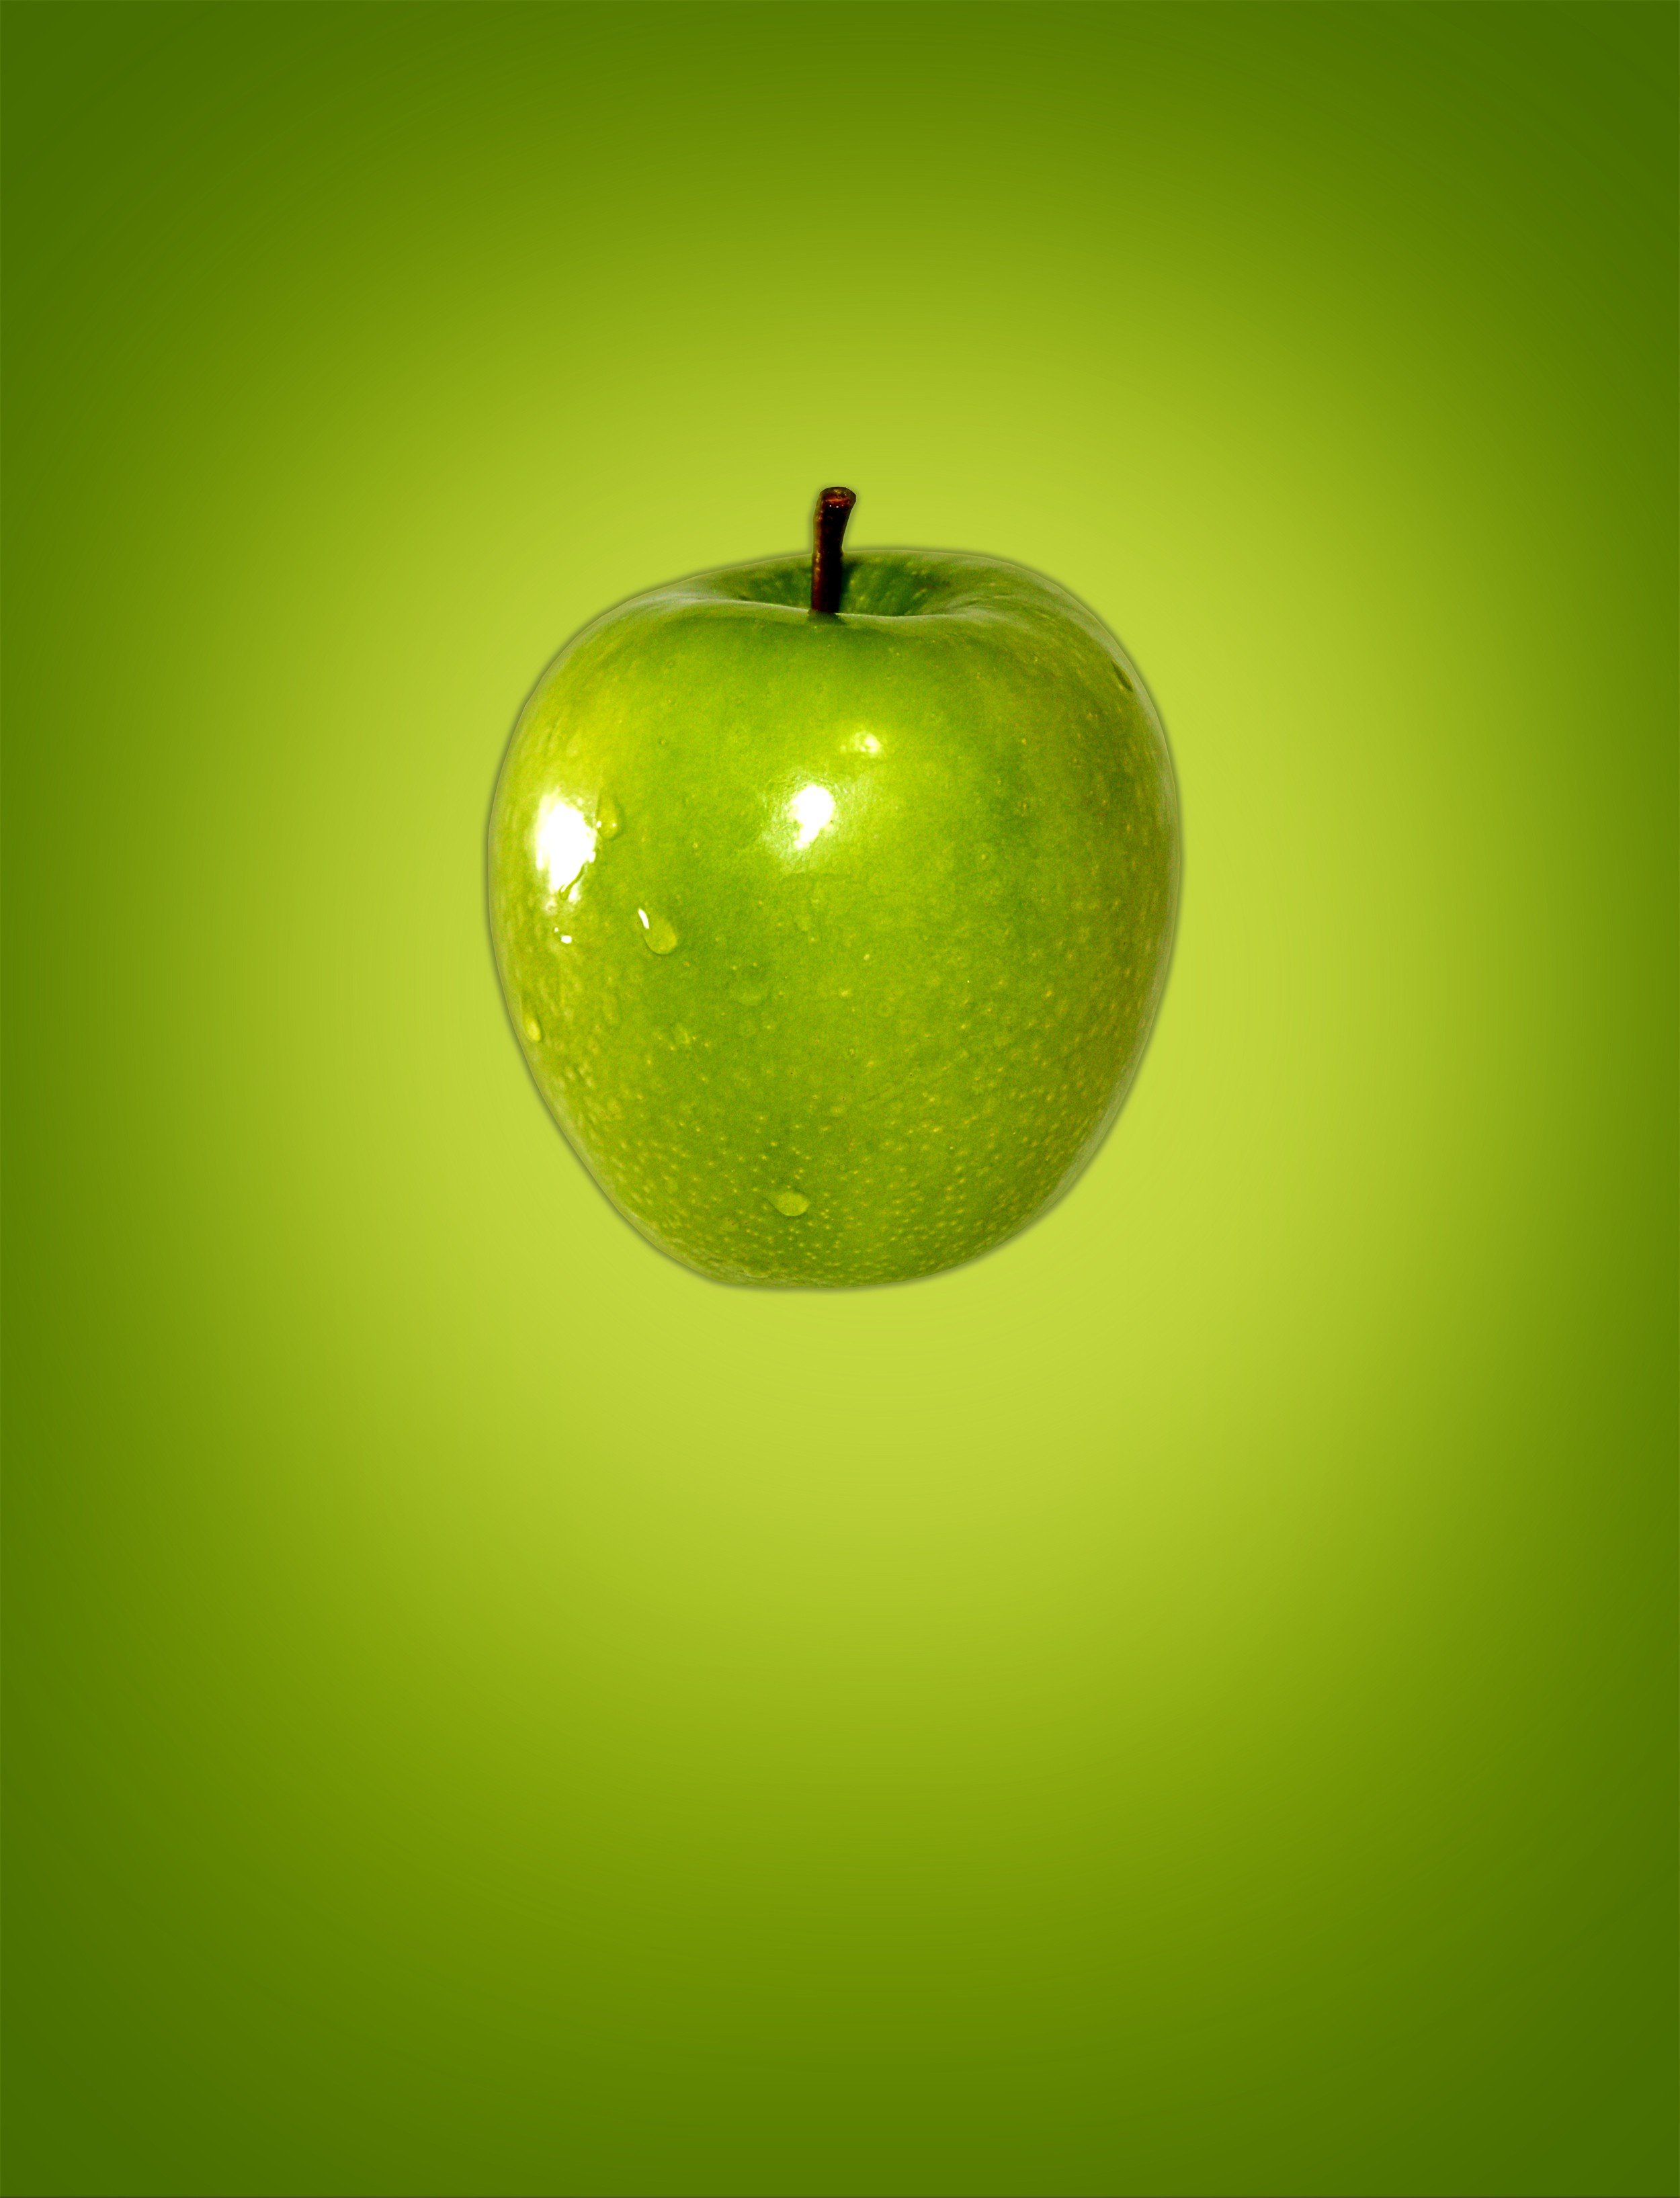 Green (apple) on green (background) photo